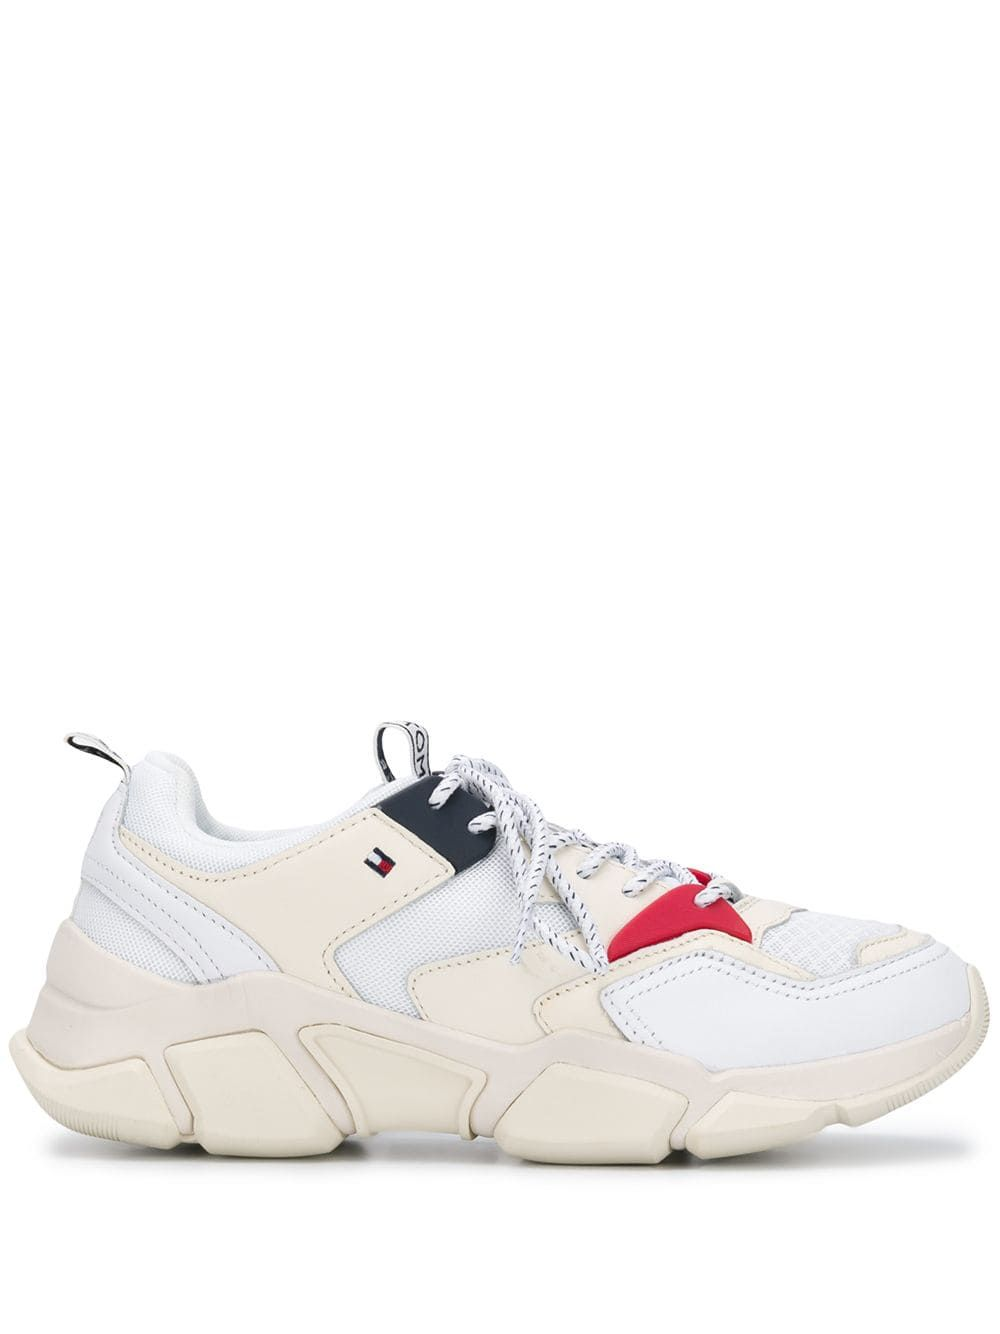 Tommy Hilfiger Chunky Sneakers In White